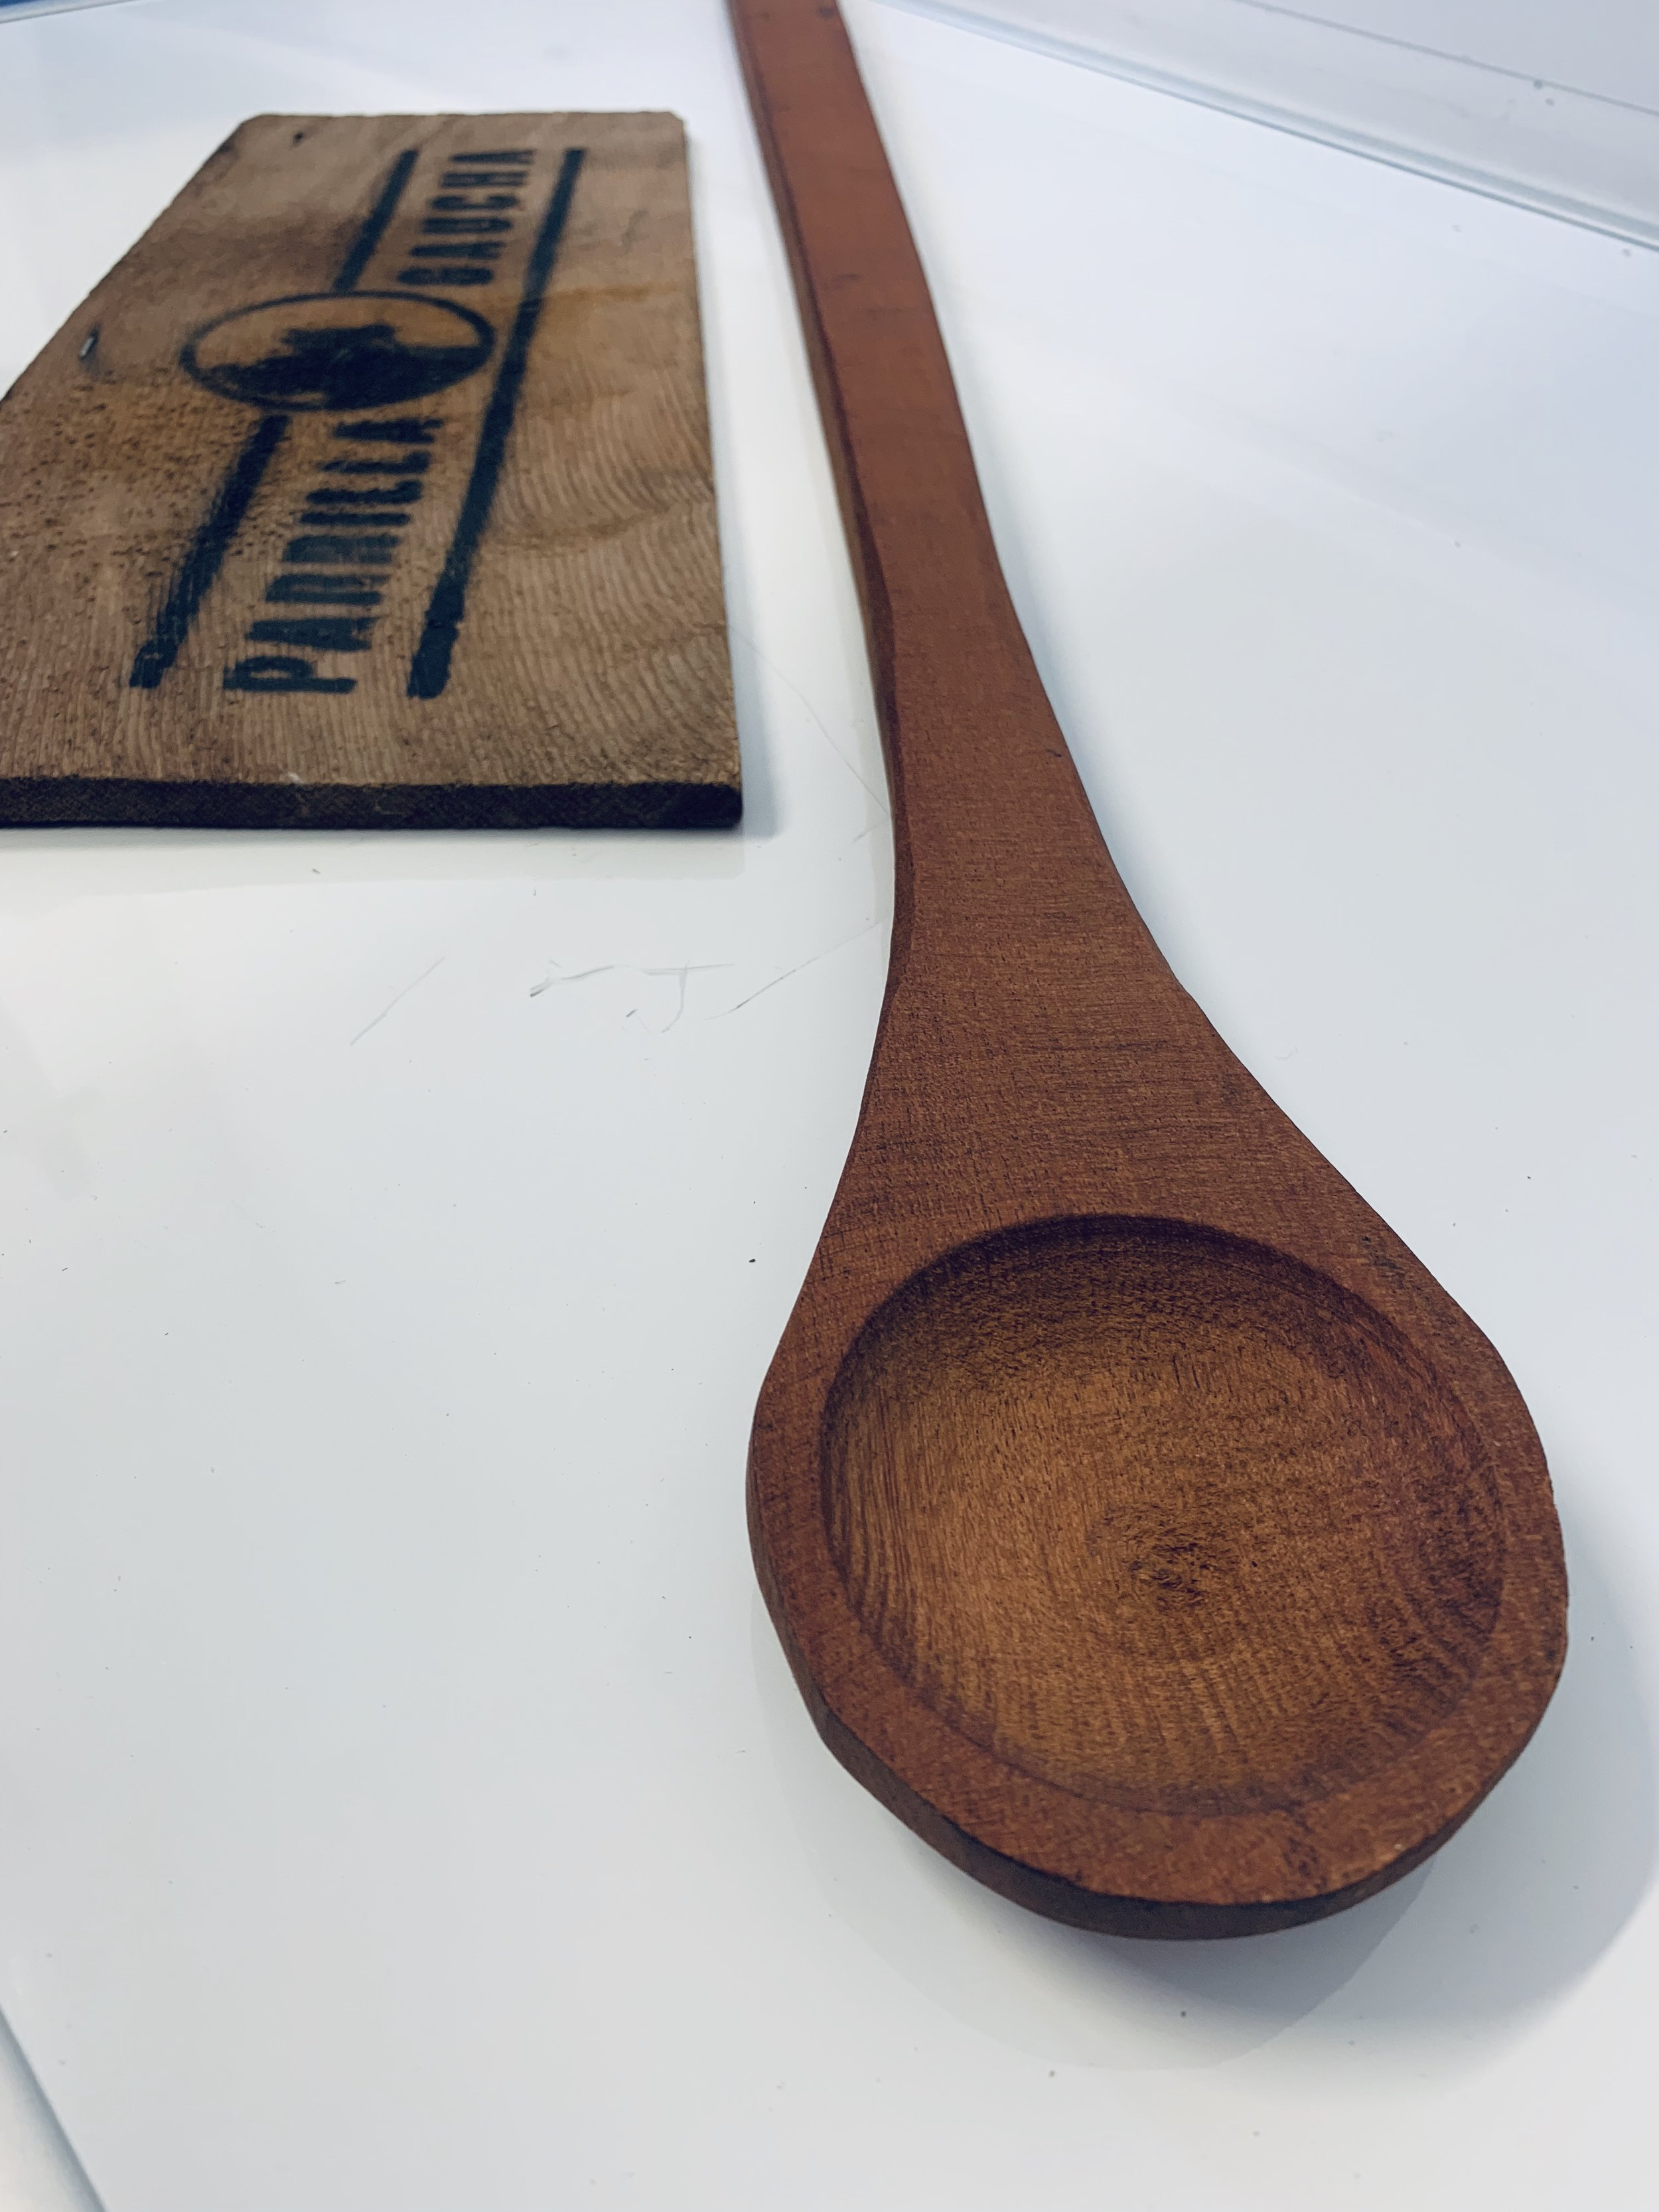 Long Handle Wooden spoon£19.95 - Protect your cookware with this superb wooden spoon. Can be used safely with non-stick pots, plow discs, pans and trays without damaging the surface, helping you keep your equipment in superb condition. Incredibly versatile, the spoon can be used for everything from grilling, baking to frying, making it an essential tool for any domestic or commercial kitchen. Robust, durable and reliable, the spoon is designed to withstand the rigours of any busy kitchen, guaranteeing excellent results every time.Dimention: 80cm long